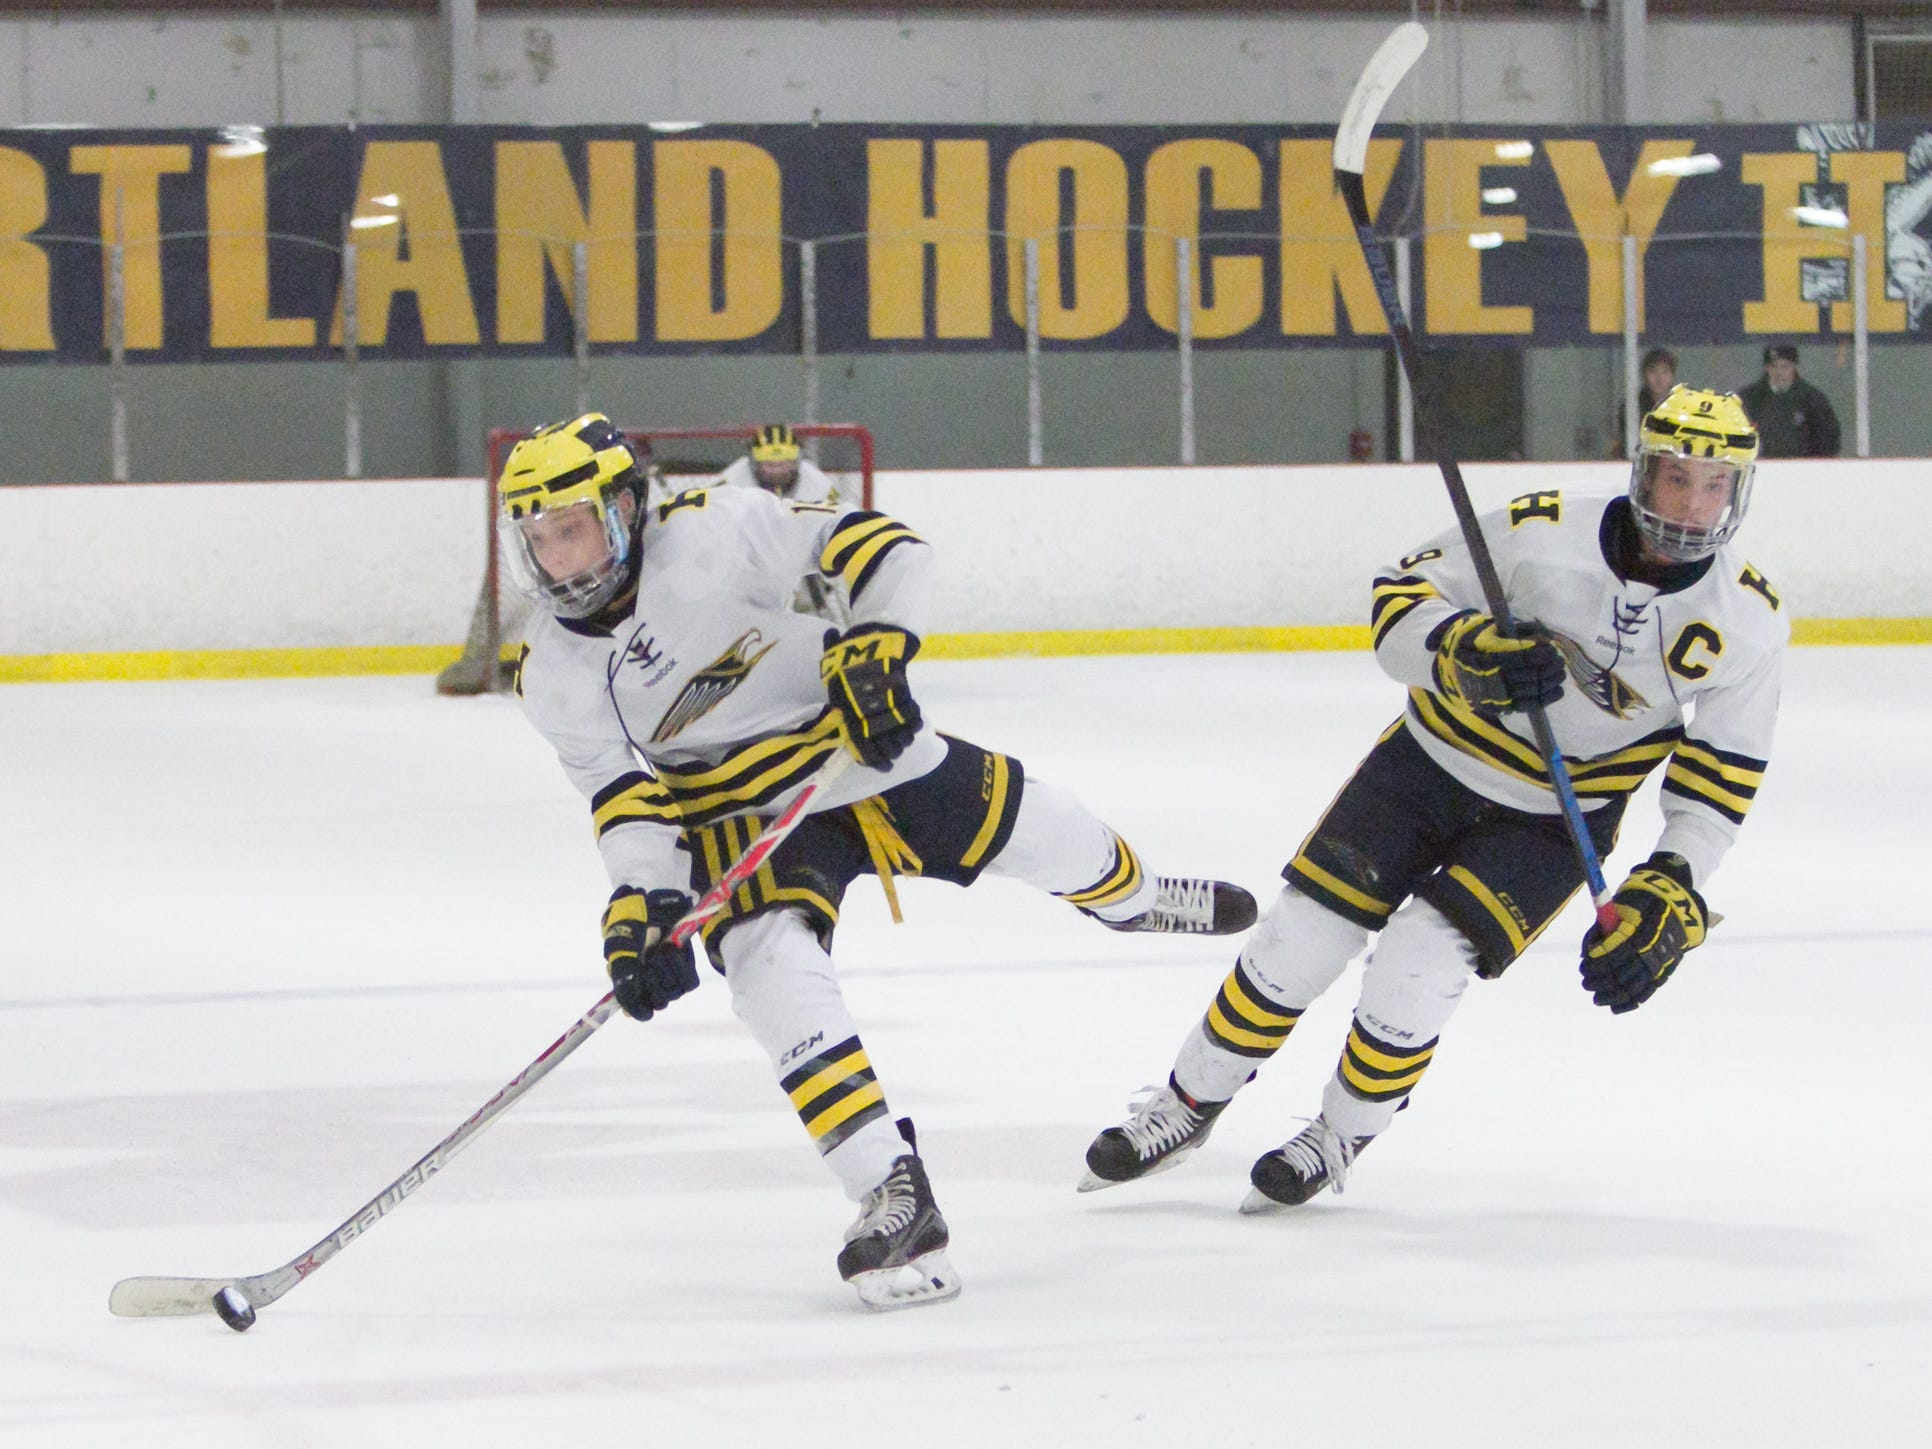 Hartland's Sam Kastamo passes the puck with Joey Larson at right in a 2-1 victory over Detroit U of D Jesuit on Friday, Jan. 11, 2019 at Hartland Sports Center.